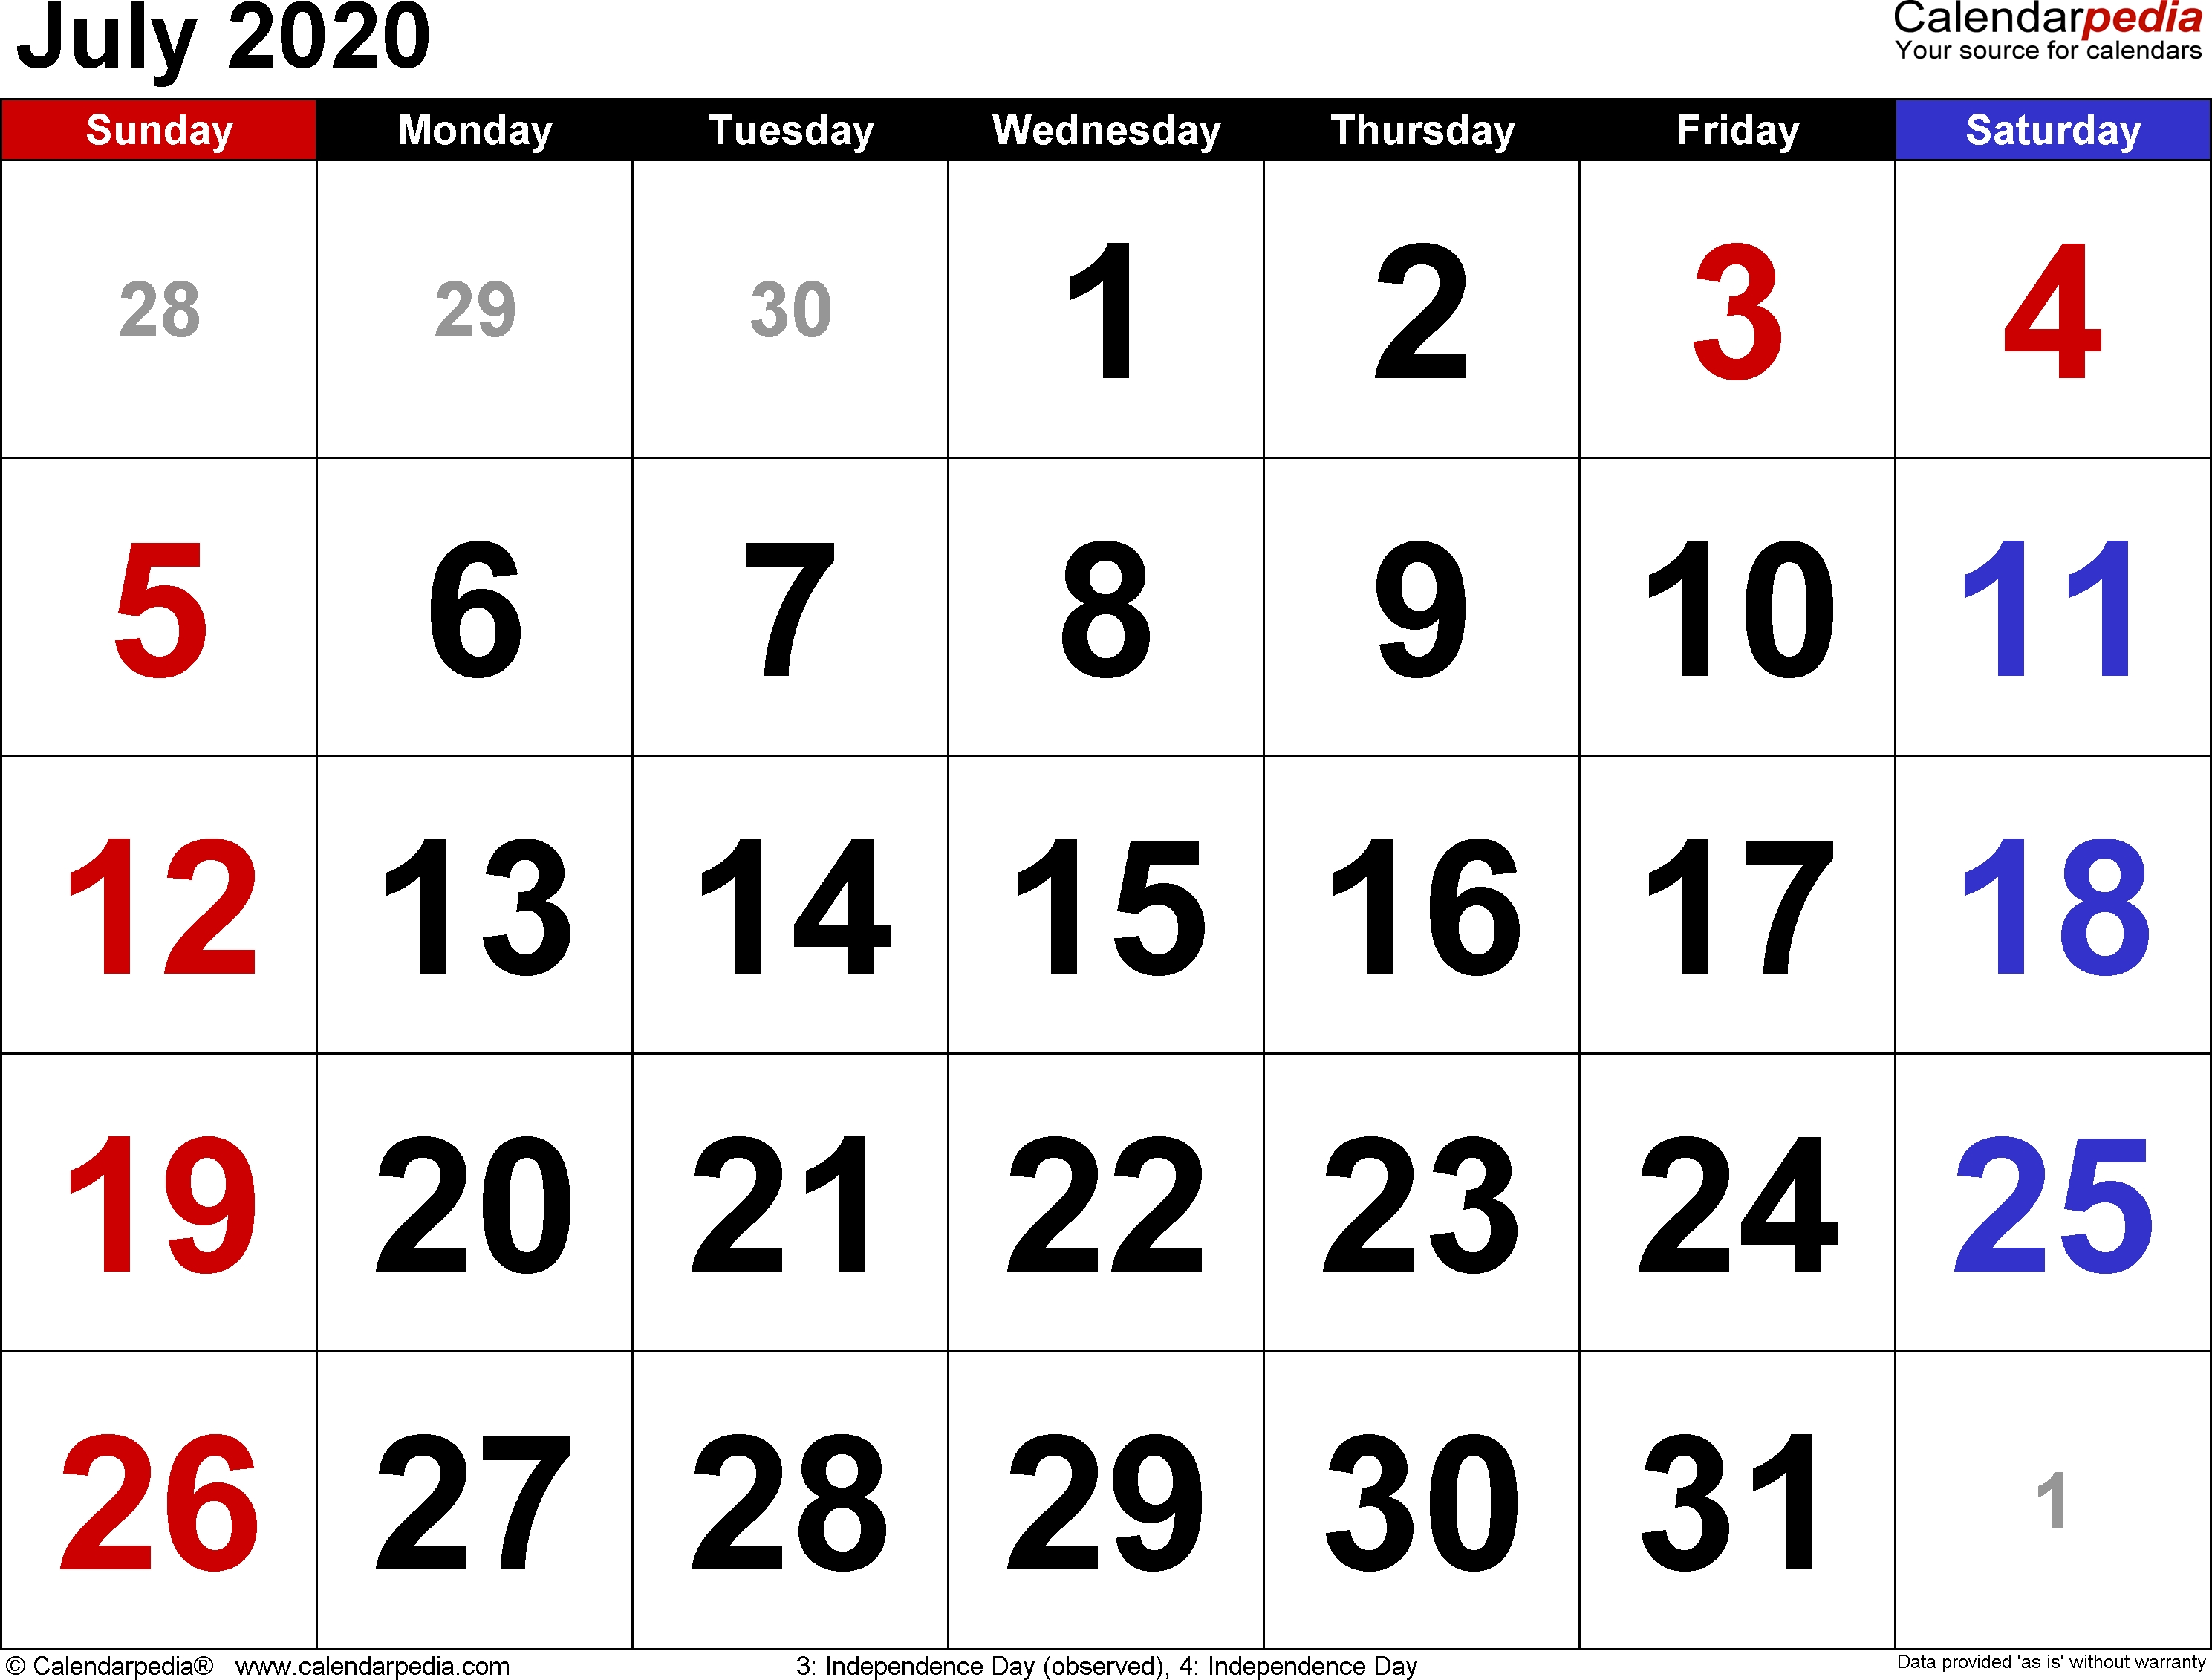 July 2020 Calendars For Word, Excel & Pdf-5 Day Calander Template July 2020